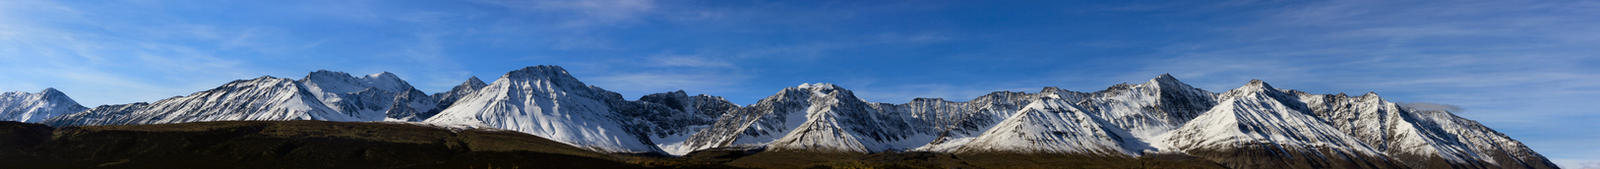 Mountain Panorama, Haines Junction, YT by Caloxort